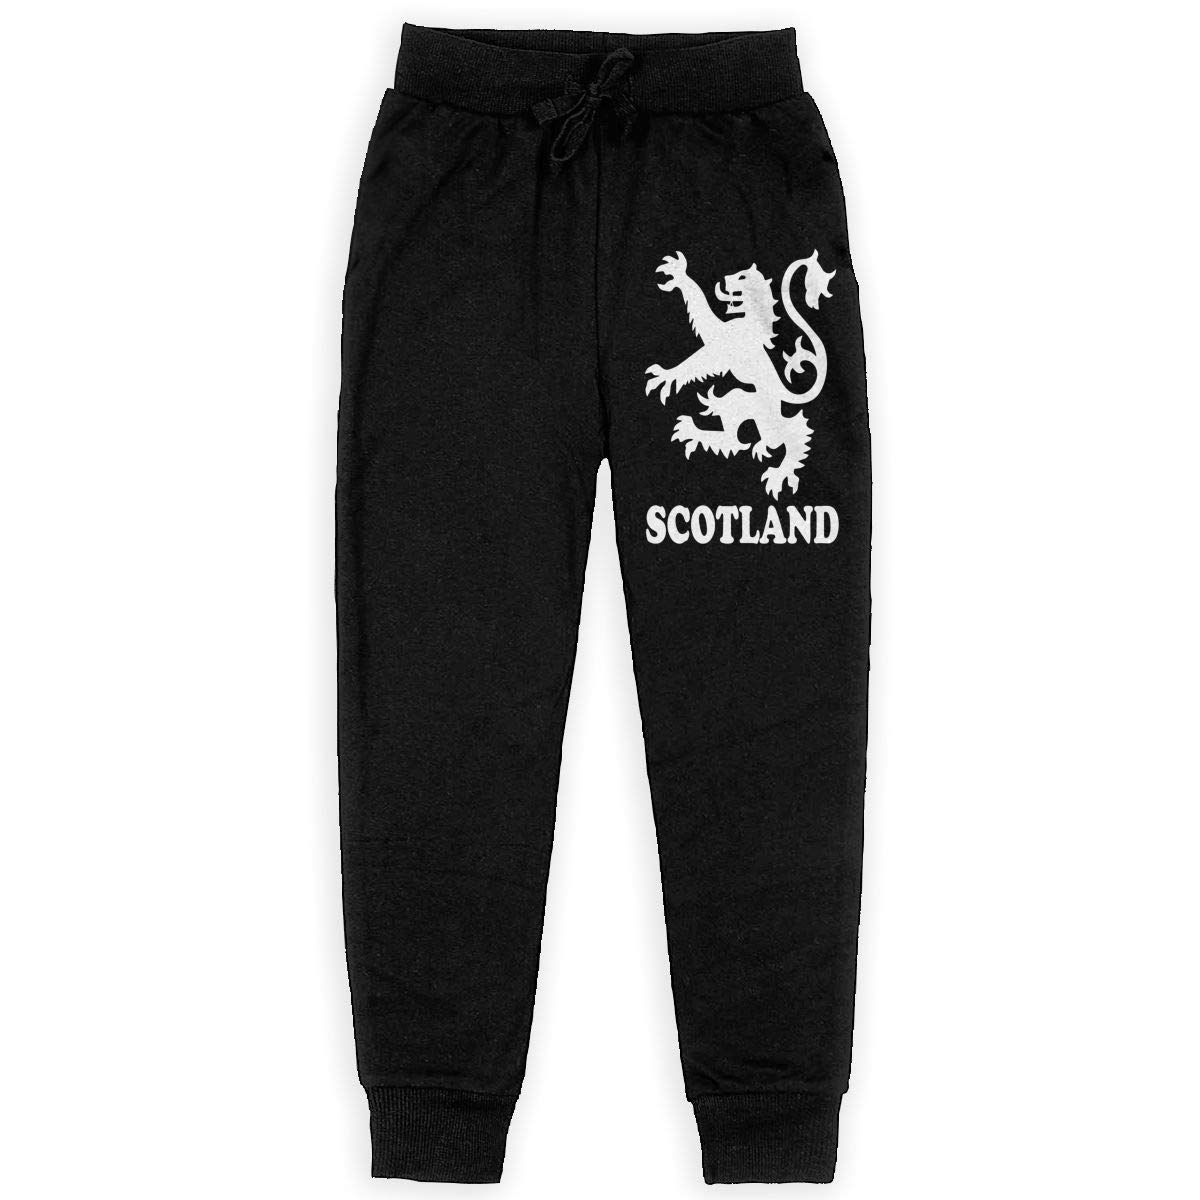 MAOYI/&J6 Lion Rampant Scotland Scottish Long Sweatpants Juniors Boys Girls Jogger Trousers with Pockets